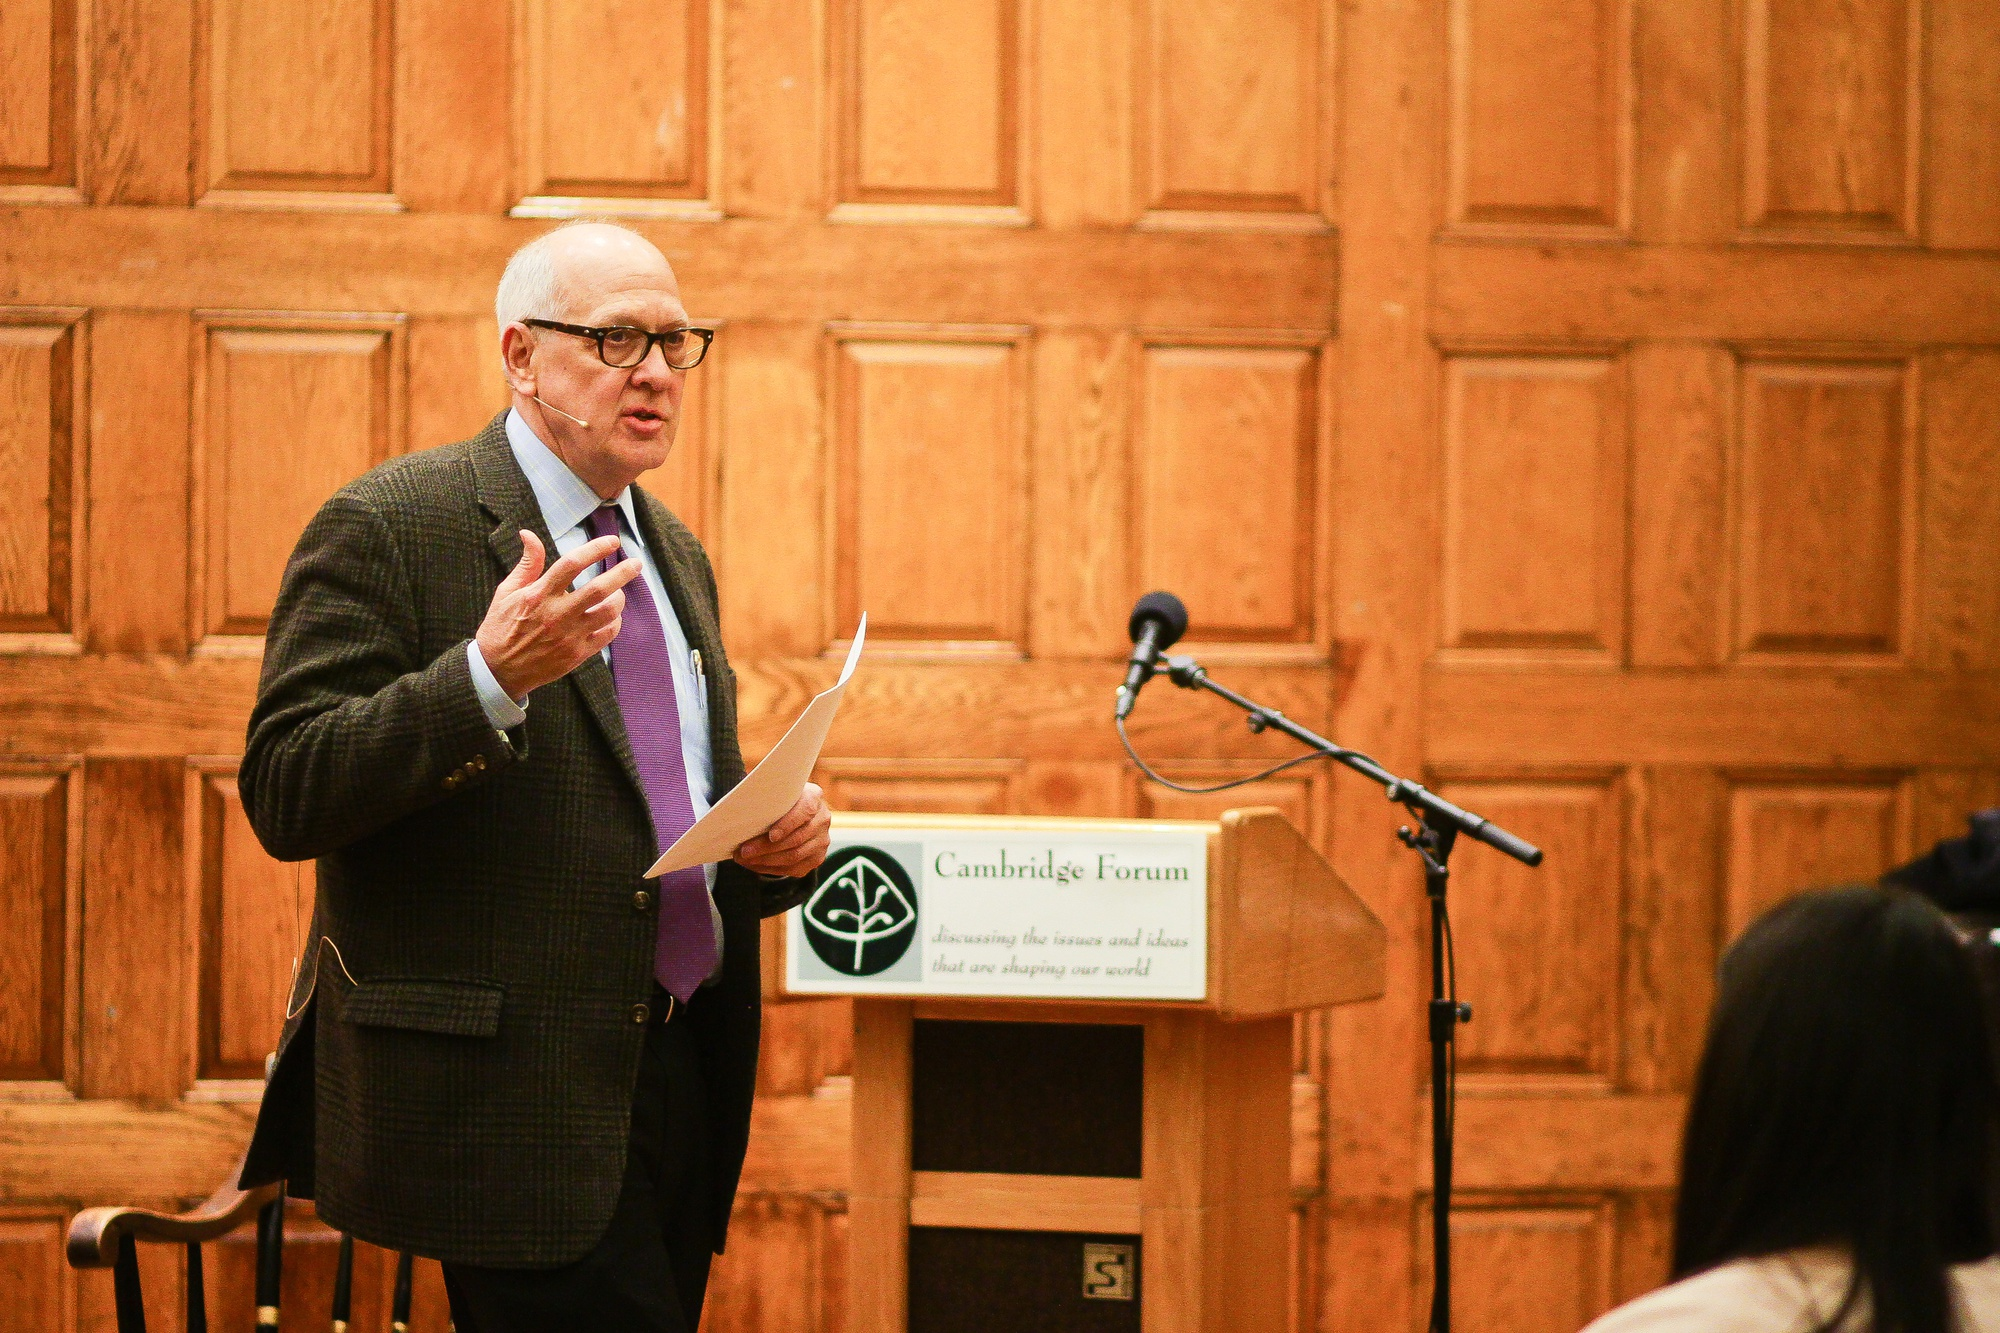 Alex Jones, director of the Harvard Shorenstein Center on Media, Politics, and Public Policy, speaks on the role of the media and journalism within a democracy, especially touching upon the history of the First Amendment. The talk was sponsored by the First Parish Church and moderated by Charles Sennott, founder of Global Post.